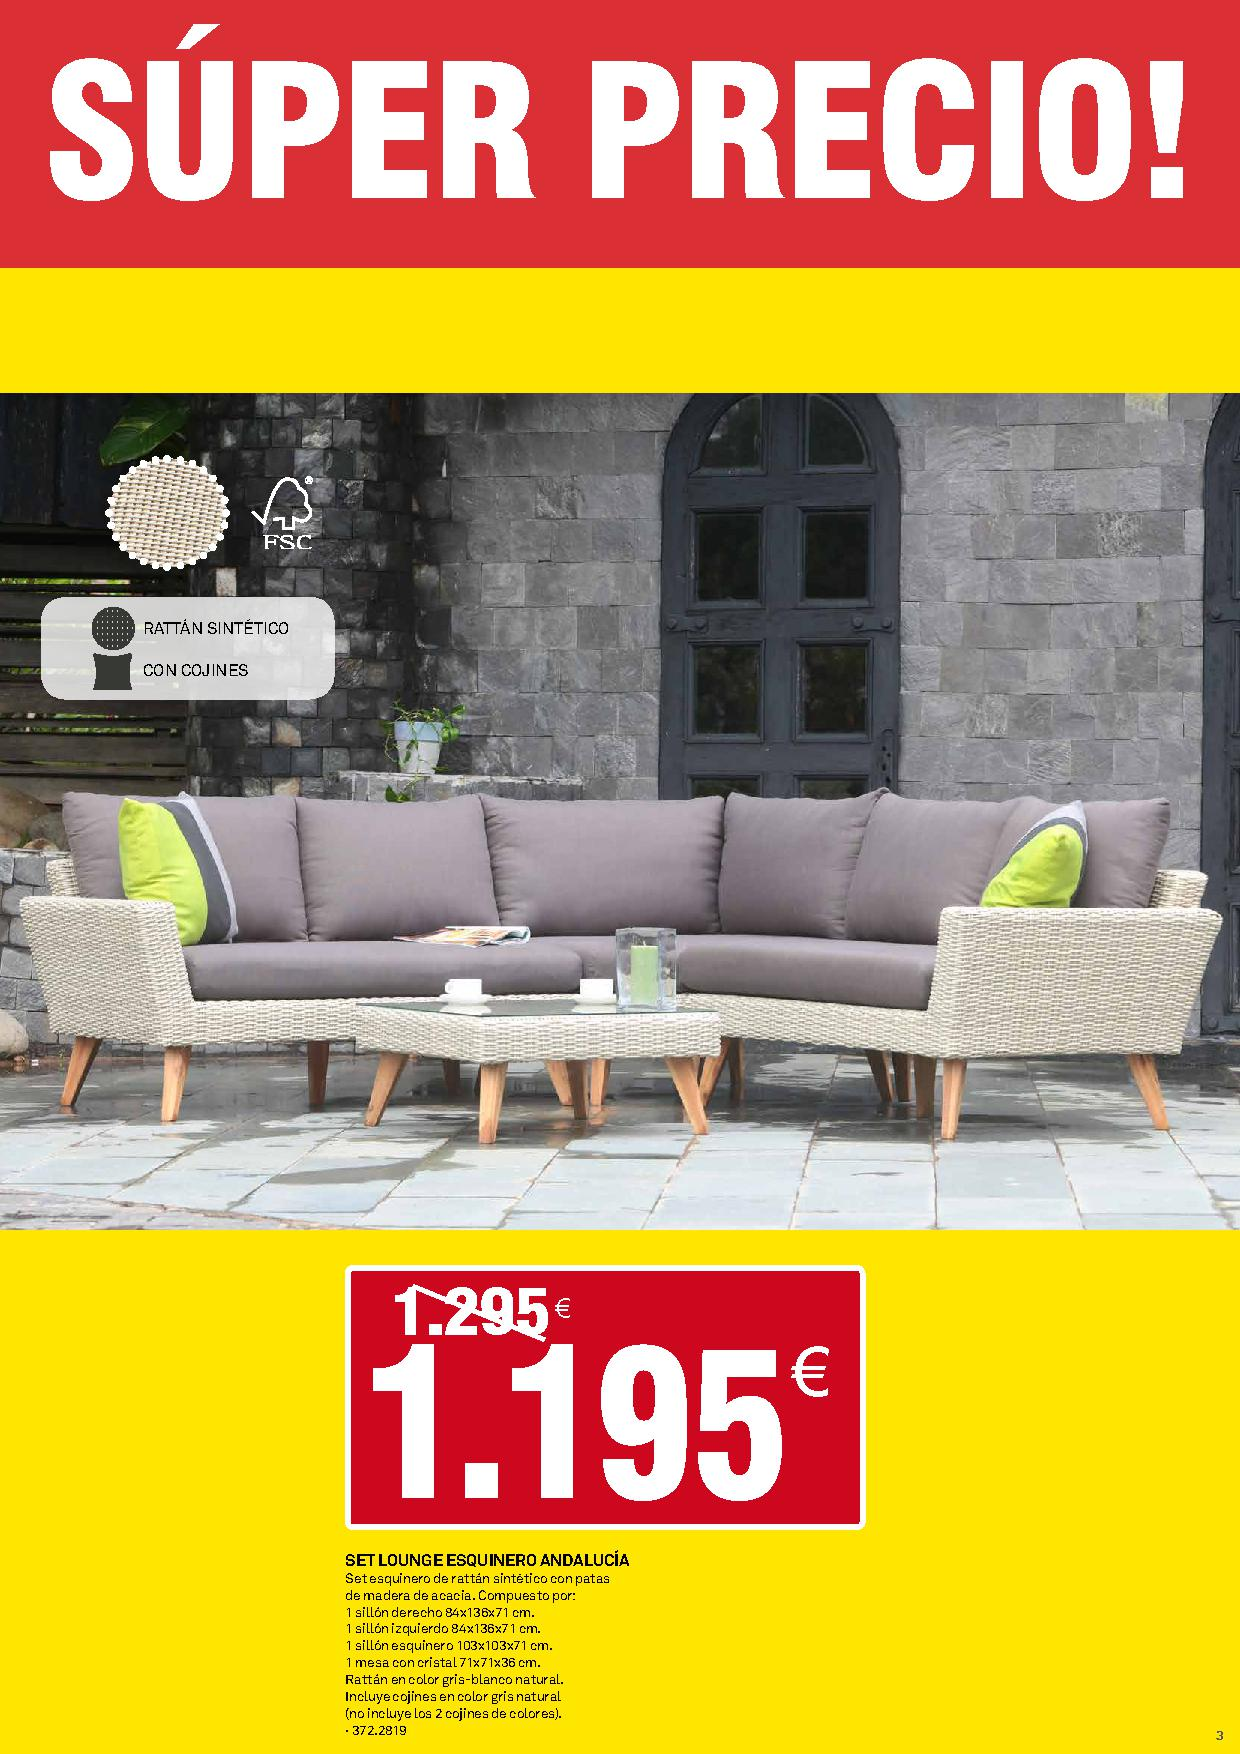 Muebles de jard n en cat logo bricoking 2017 imuebles - Muebles edem catalogo 2017 ...